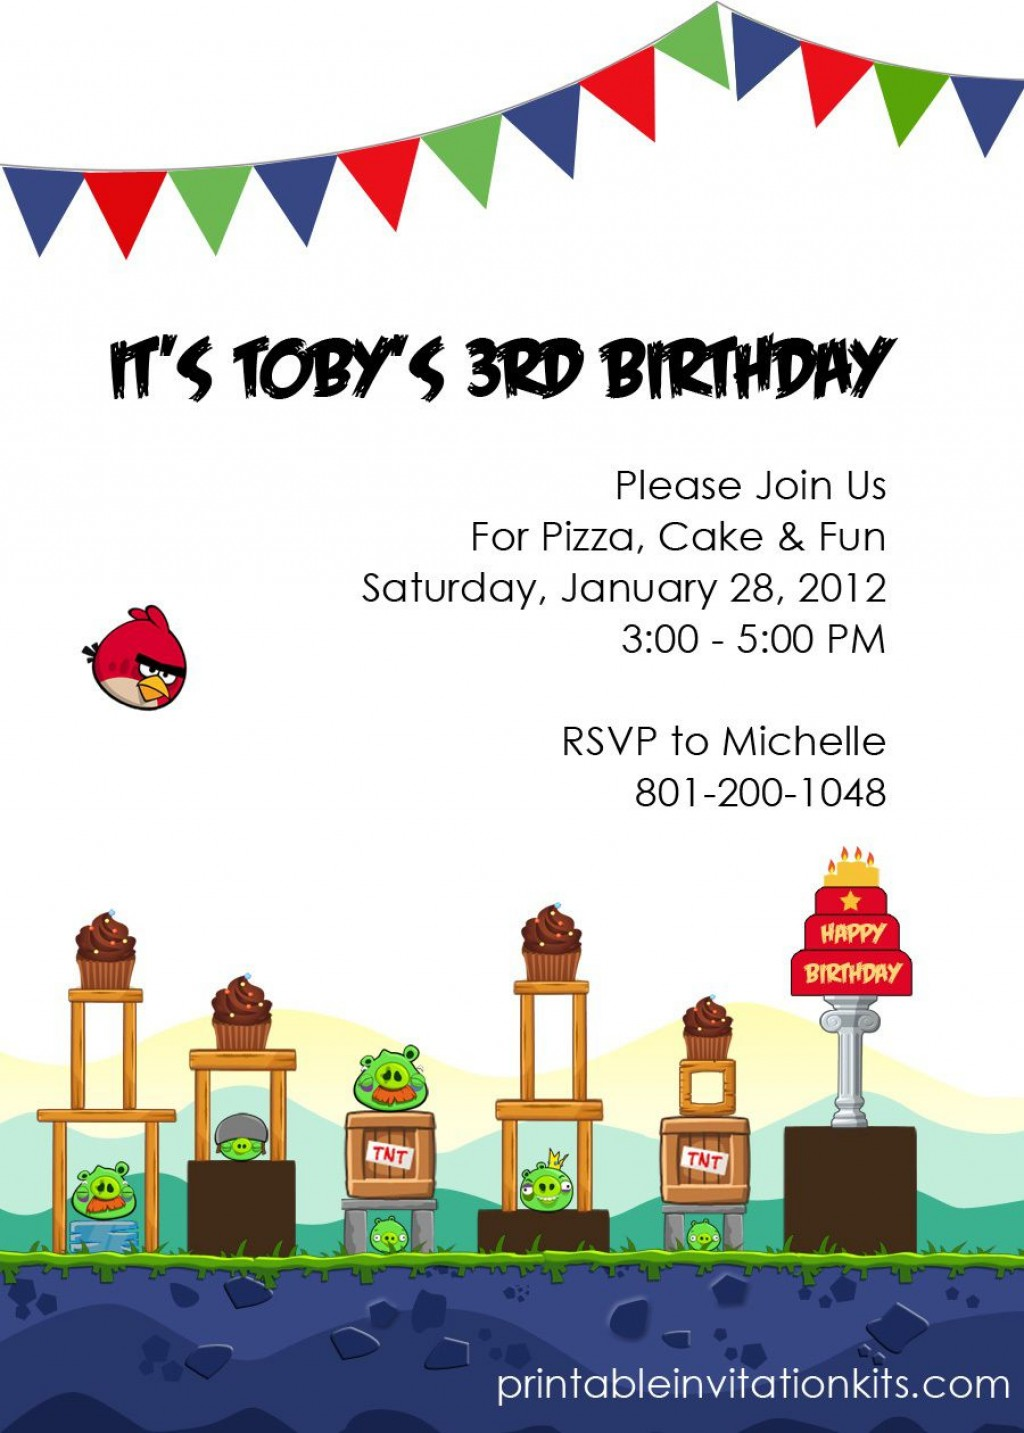 006 Archaicawful Birthday Party Invitation Template Word Picture  40th Wording Sample Unicorn FreeLarge